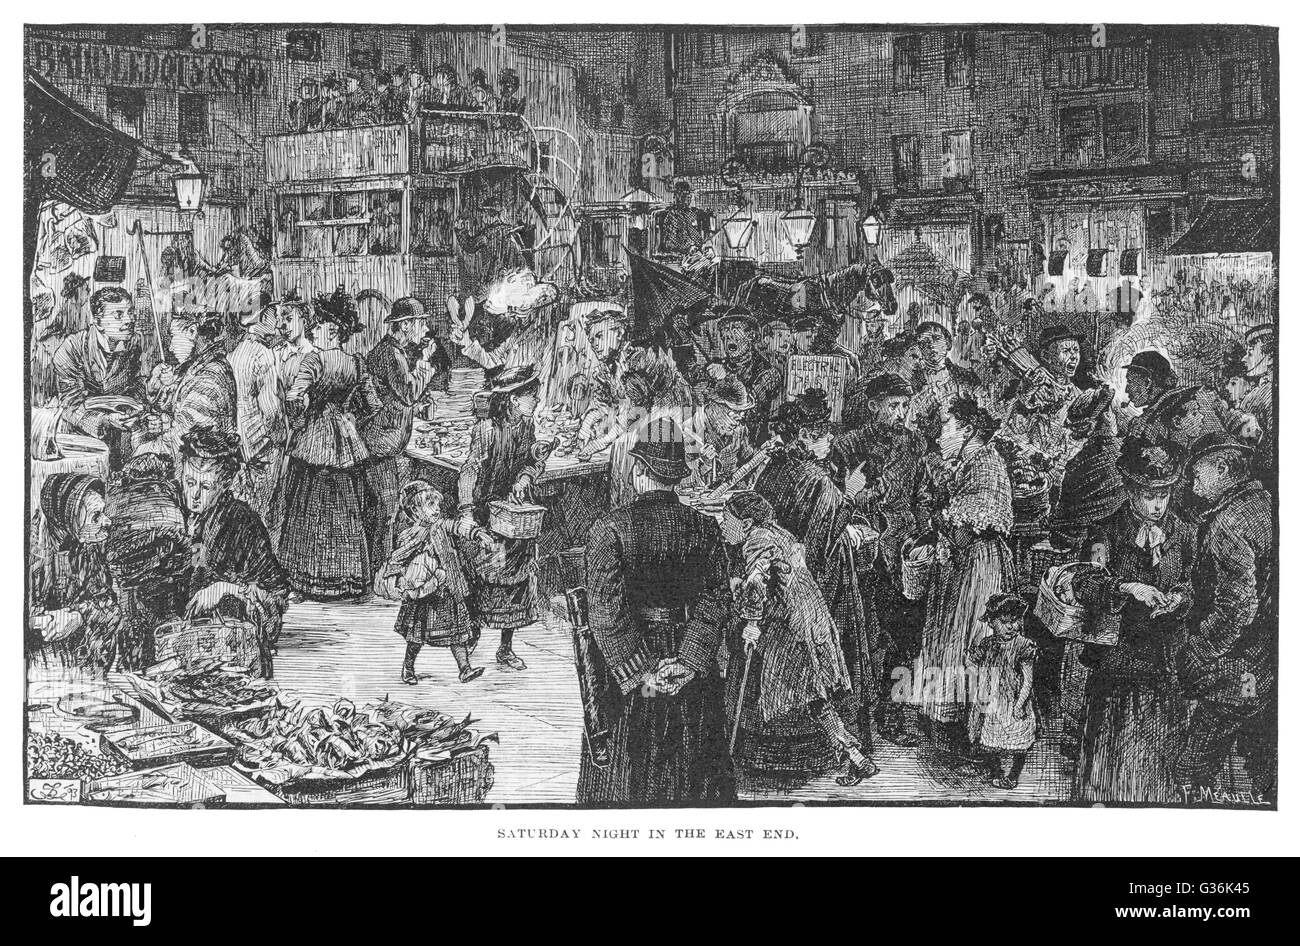 Saturday evening shopping in the East End of London, with a lot of people milling around.      Date: 1894 - Stock Image